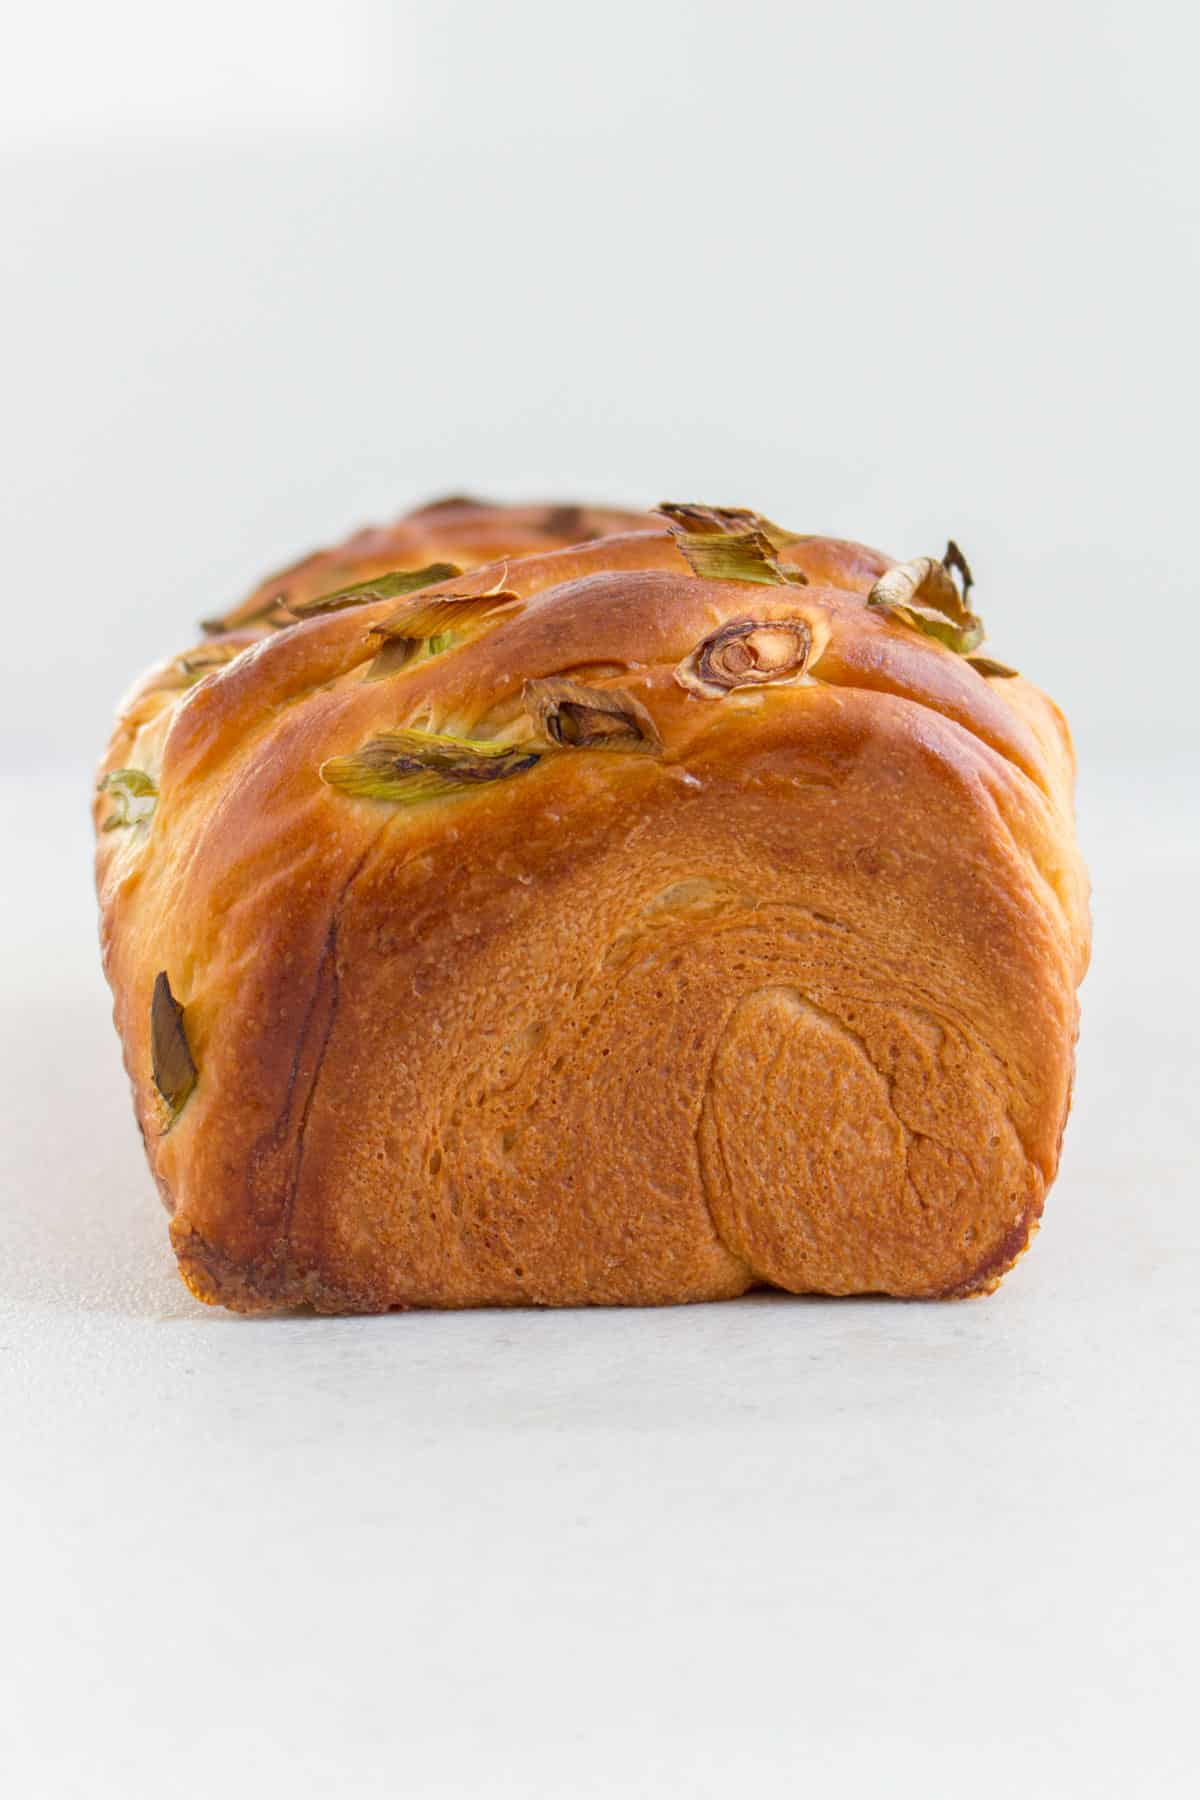 Profile view of a loaf of milk bread.